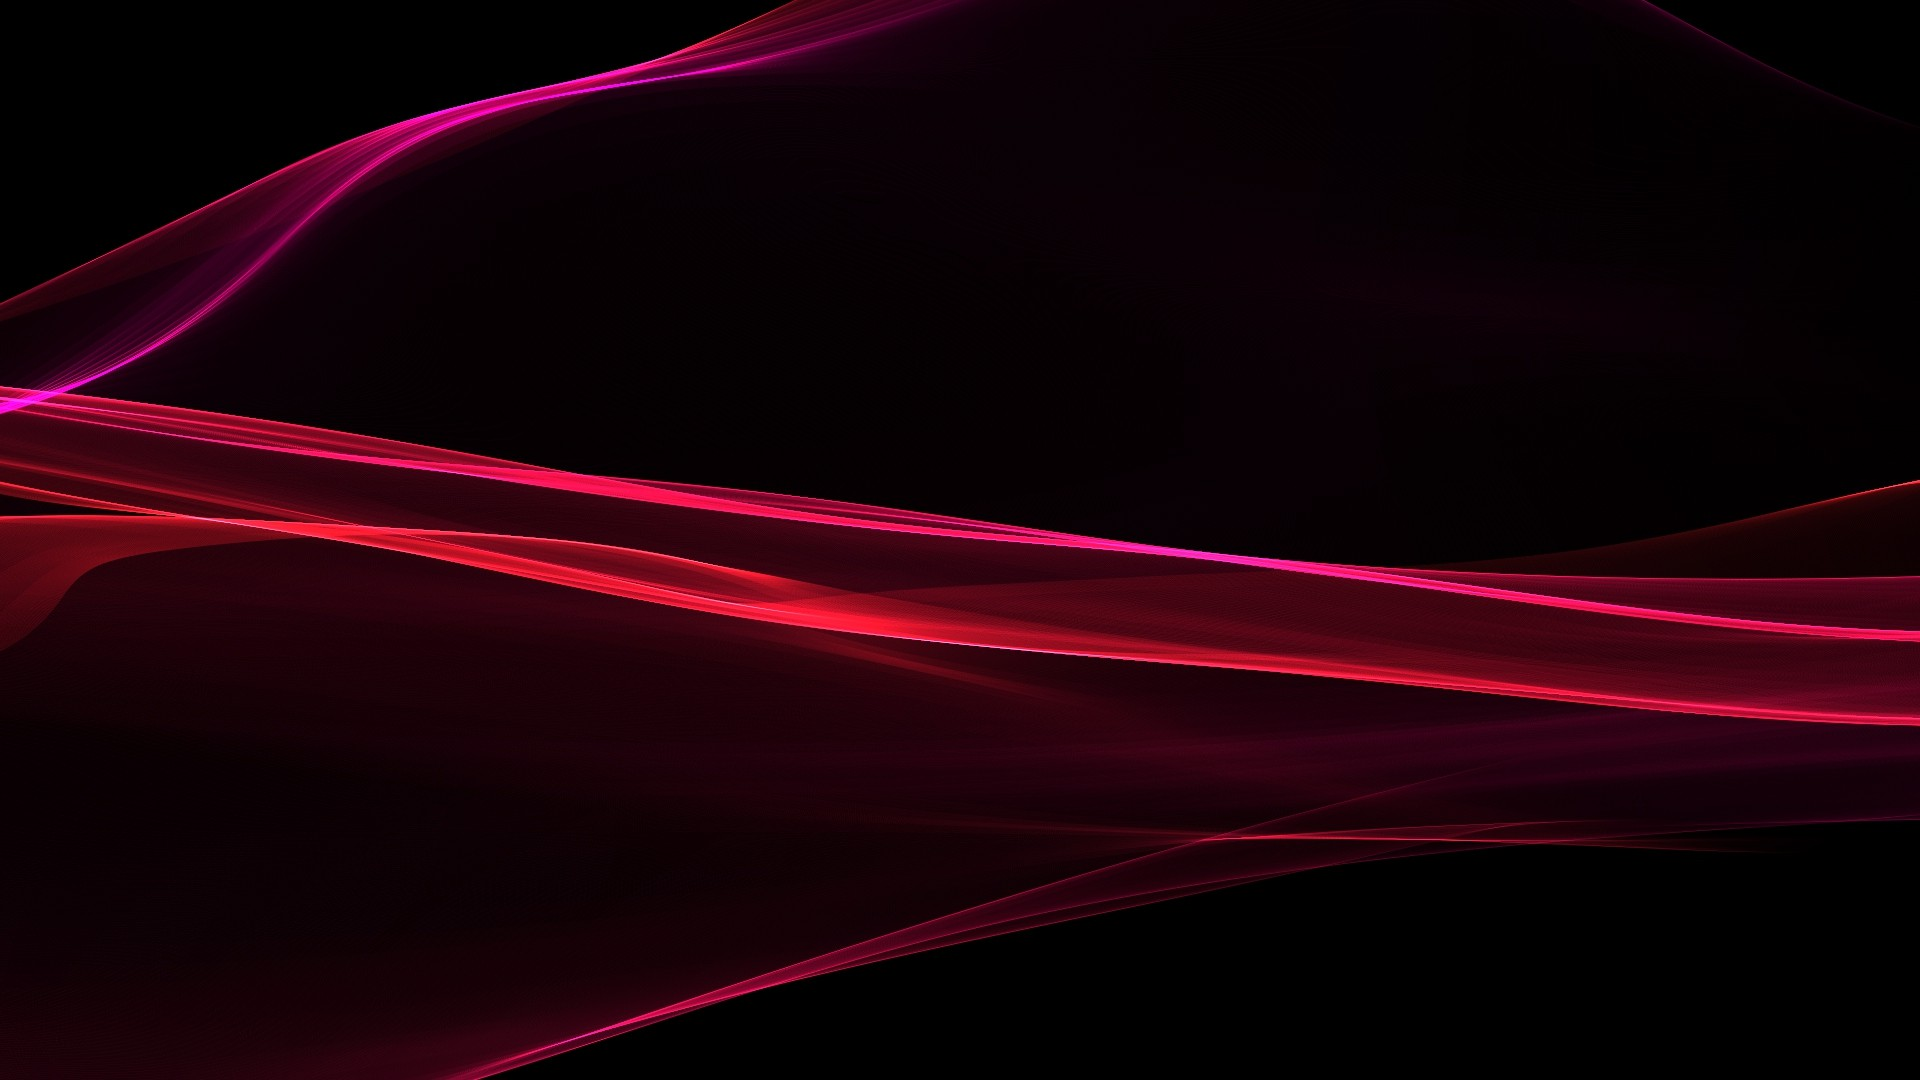 Download Abstract Red Wallpaper 1920x1080 | Wallpoper #281779